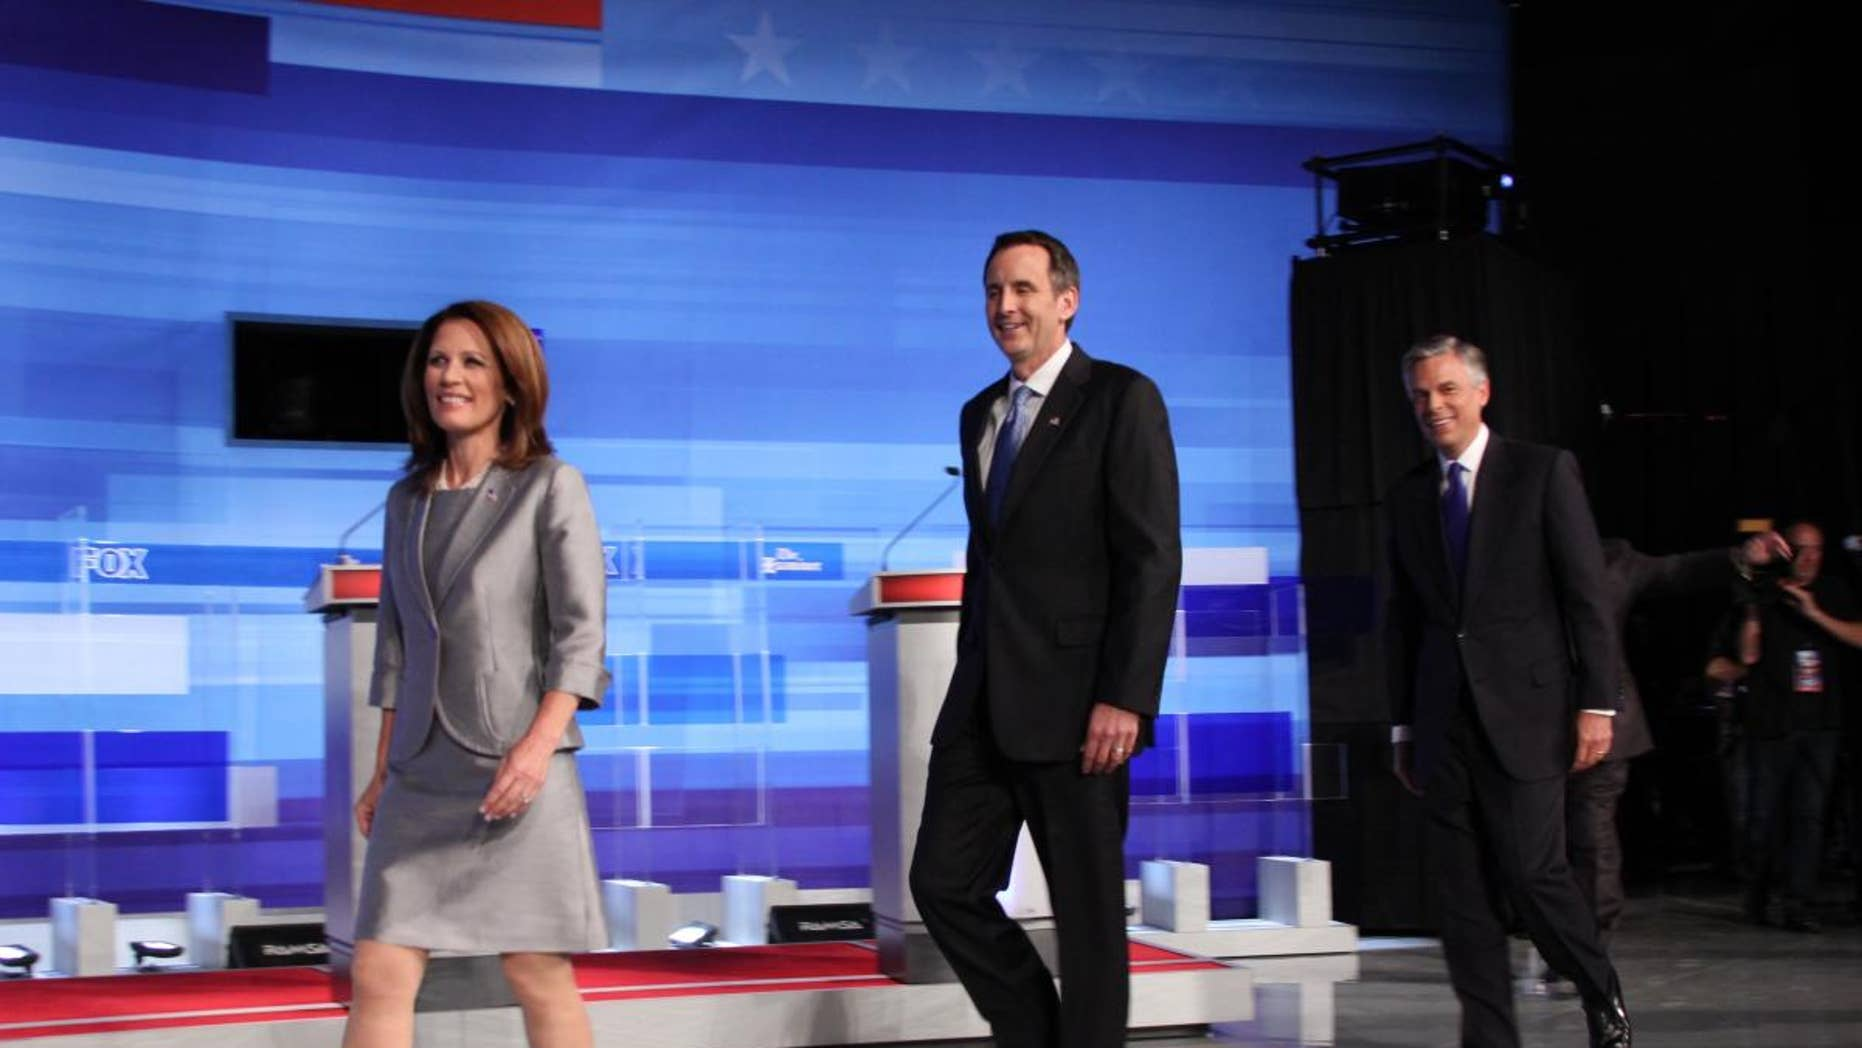 Candidates Michele Bachmann, Tim Pawlenty and Jon Huntsman take the stage at Thursday's Fox News, Washington Examiner, Iowa GOP presidential debate. (Fox News Photo)